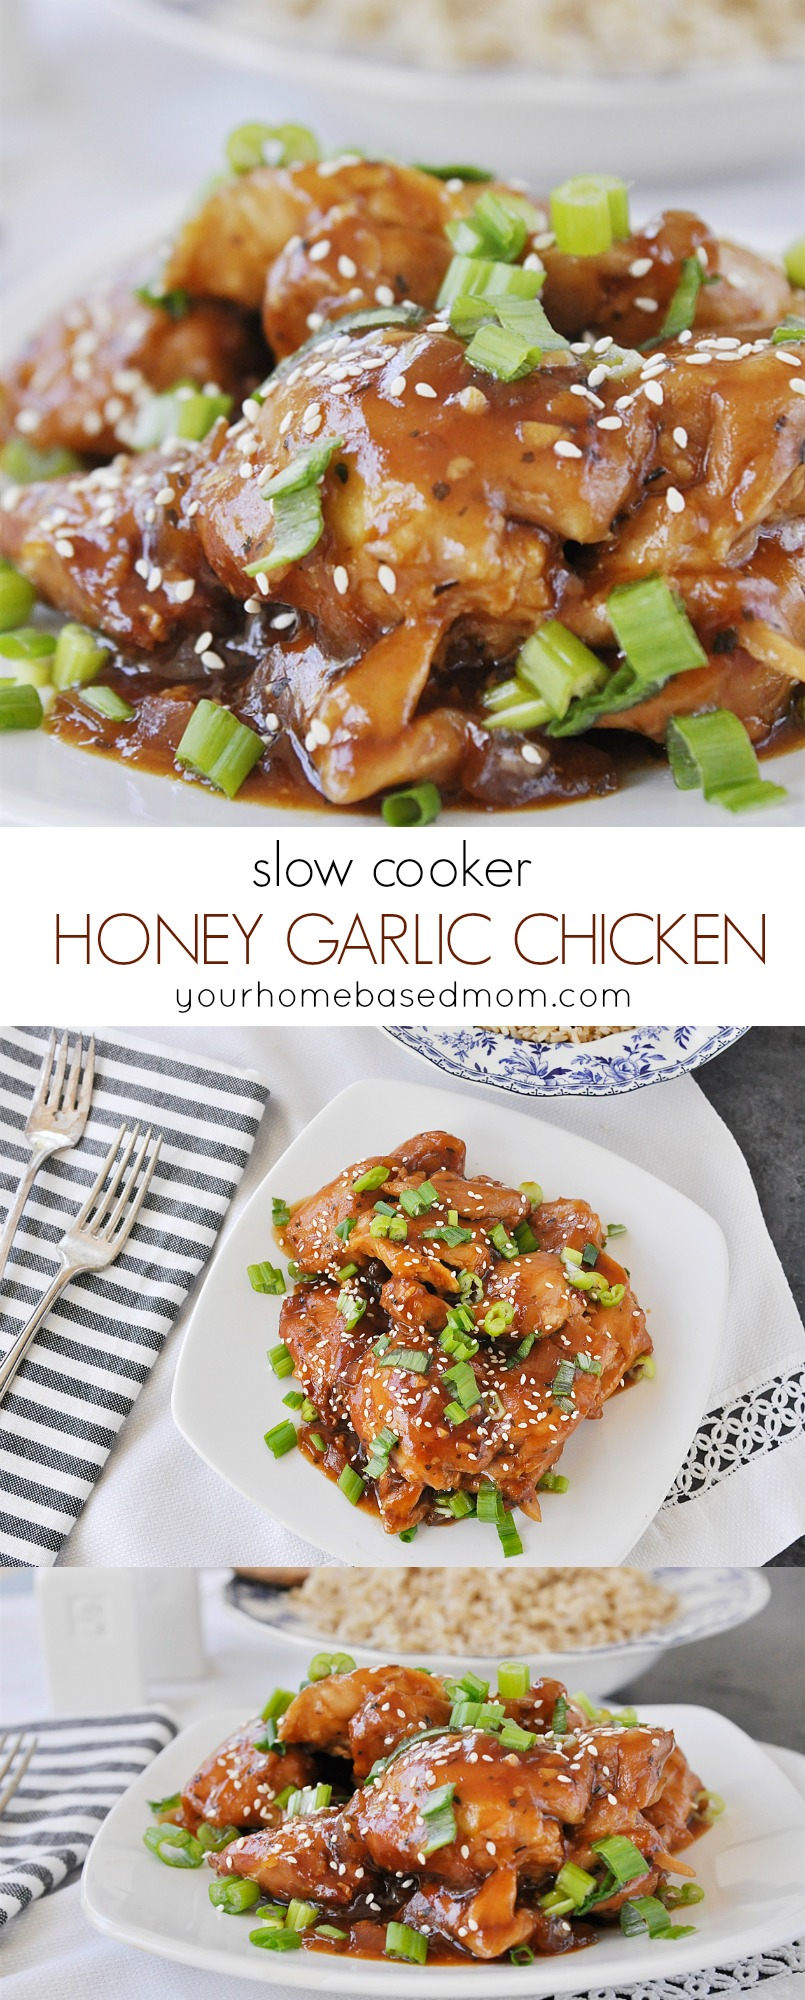 Slow Cooker Honey Garlic Chicken is a quick and easy dinner!